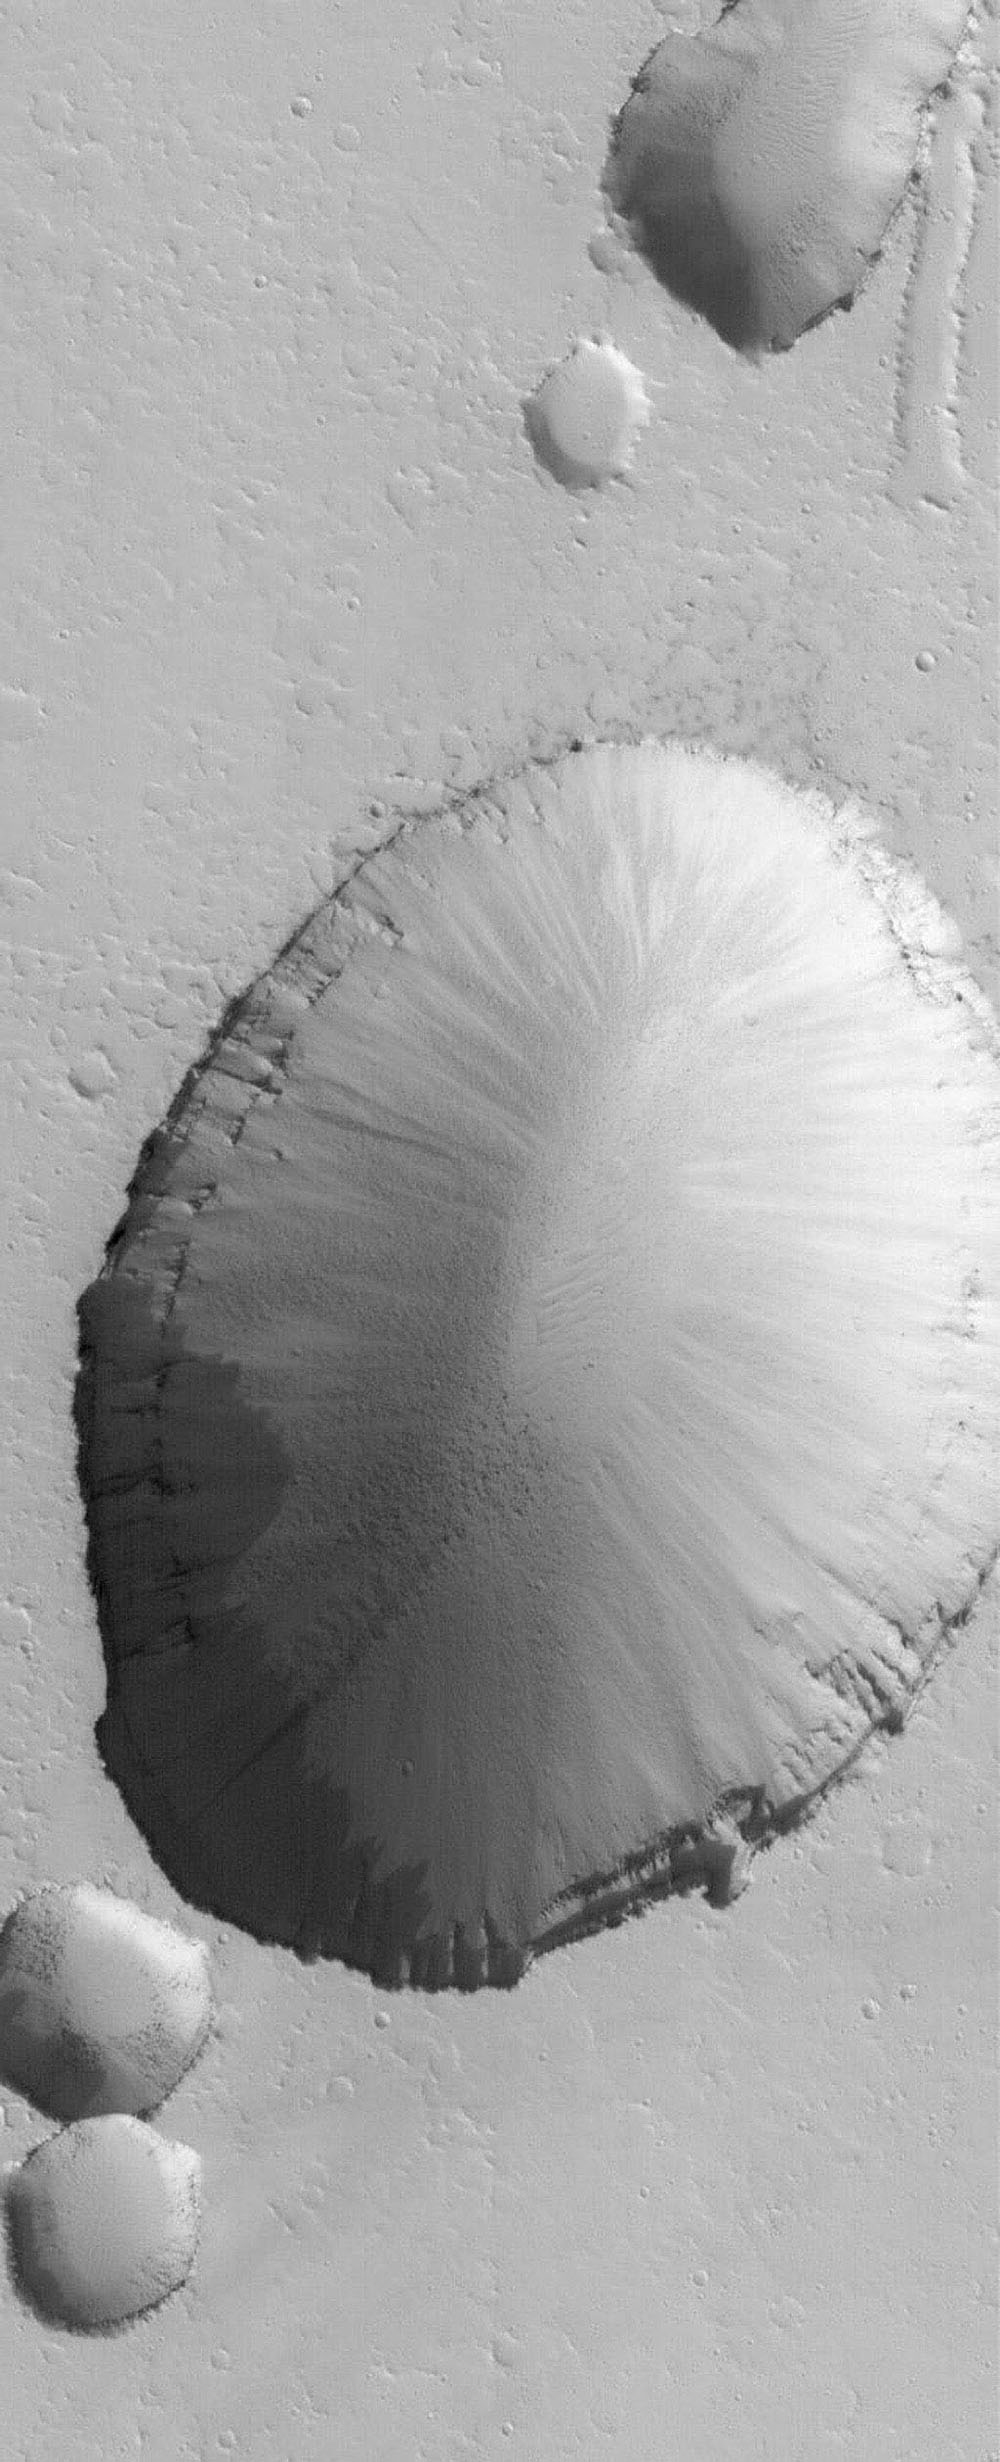 NASA's Mars Global Surveyor shows a large collapse pit (and portions of several smaller pits) in the Tractus Fossae portion of the Tharsis region of Mars.